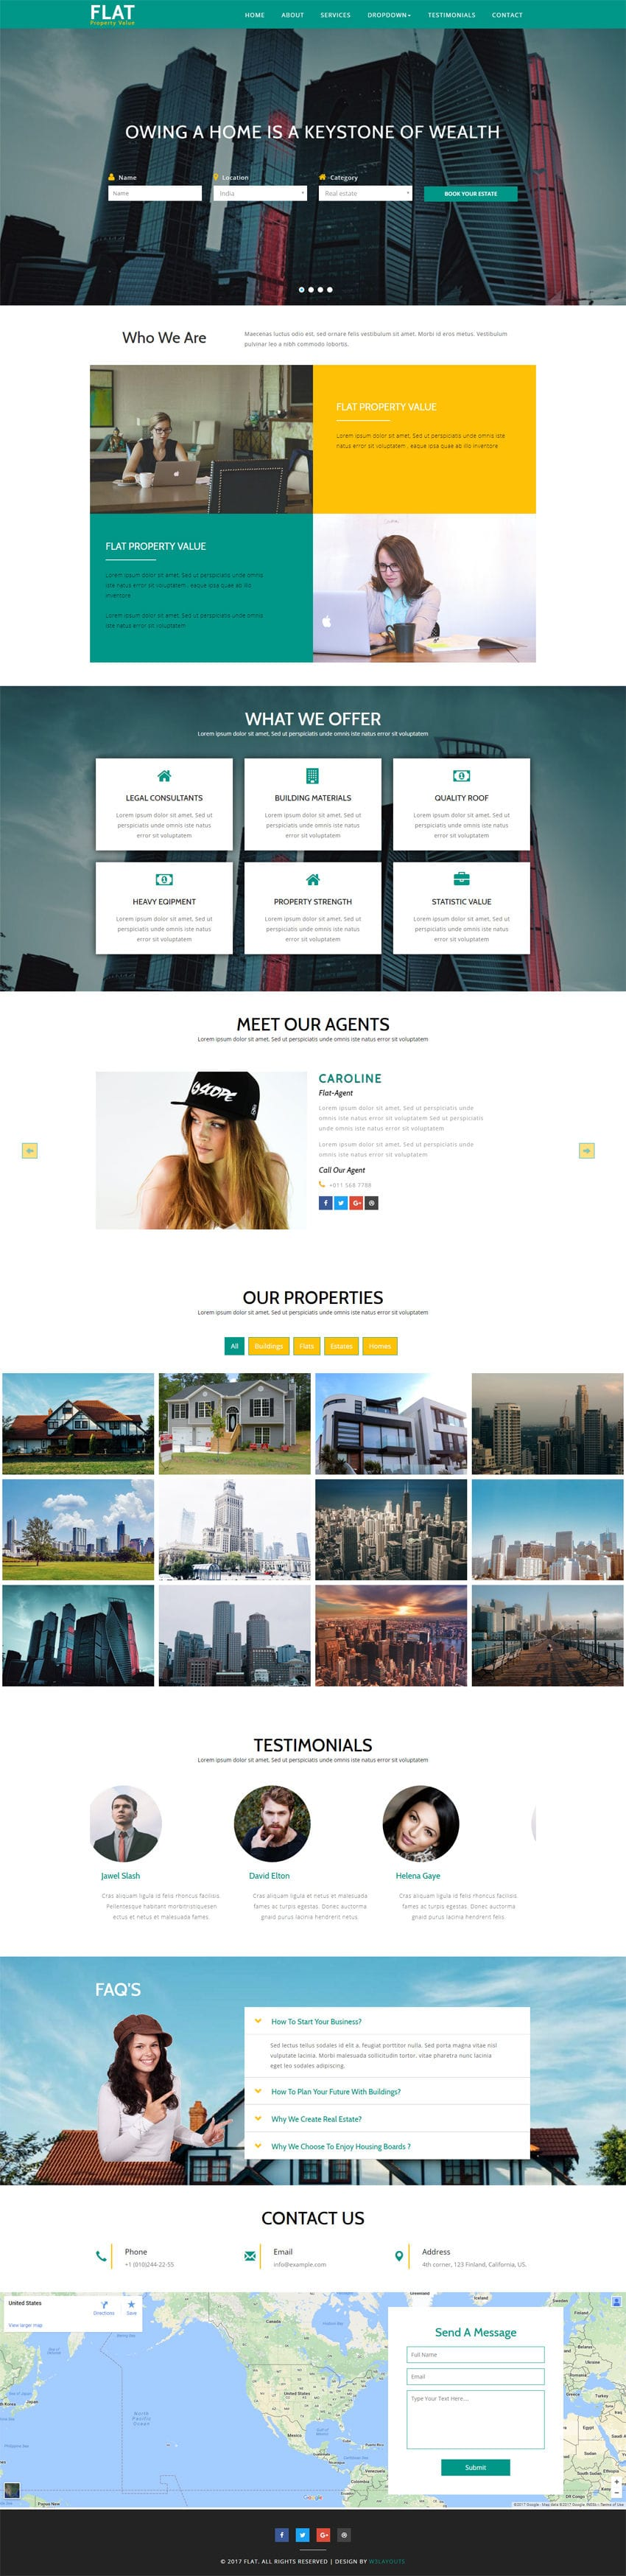 Faq Bootstrap Template Image collections - Template Design Ideas